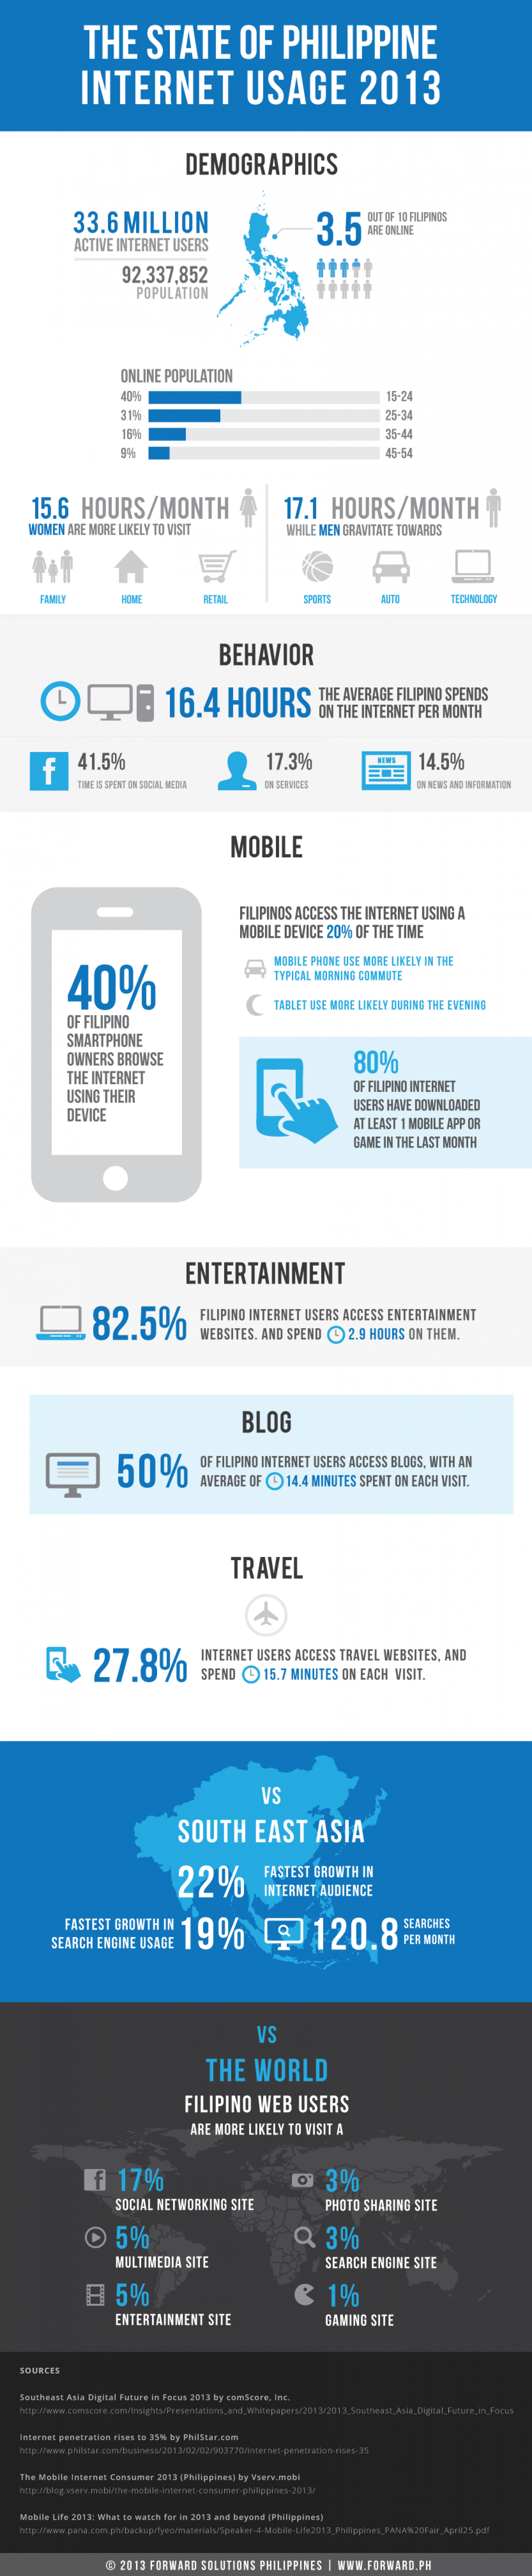 The State of Philippine Internet Usage 2013 Infographic